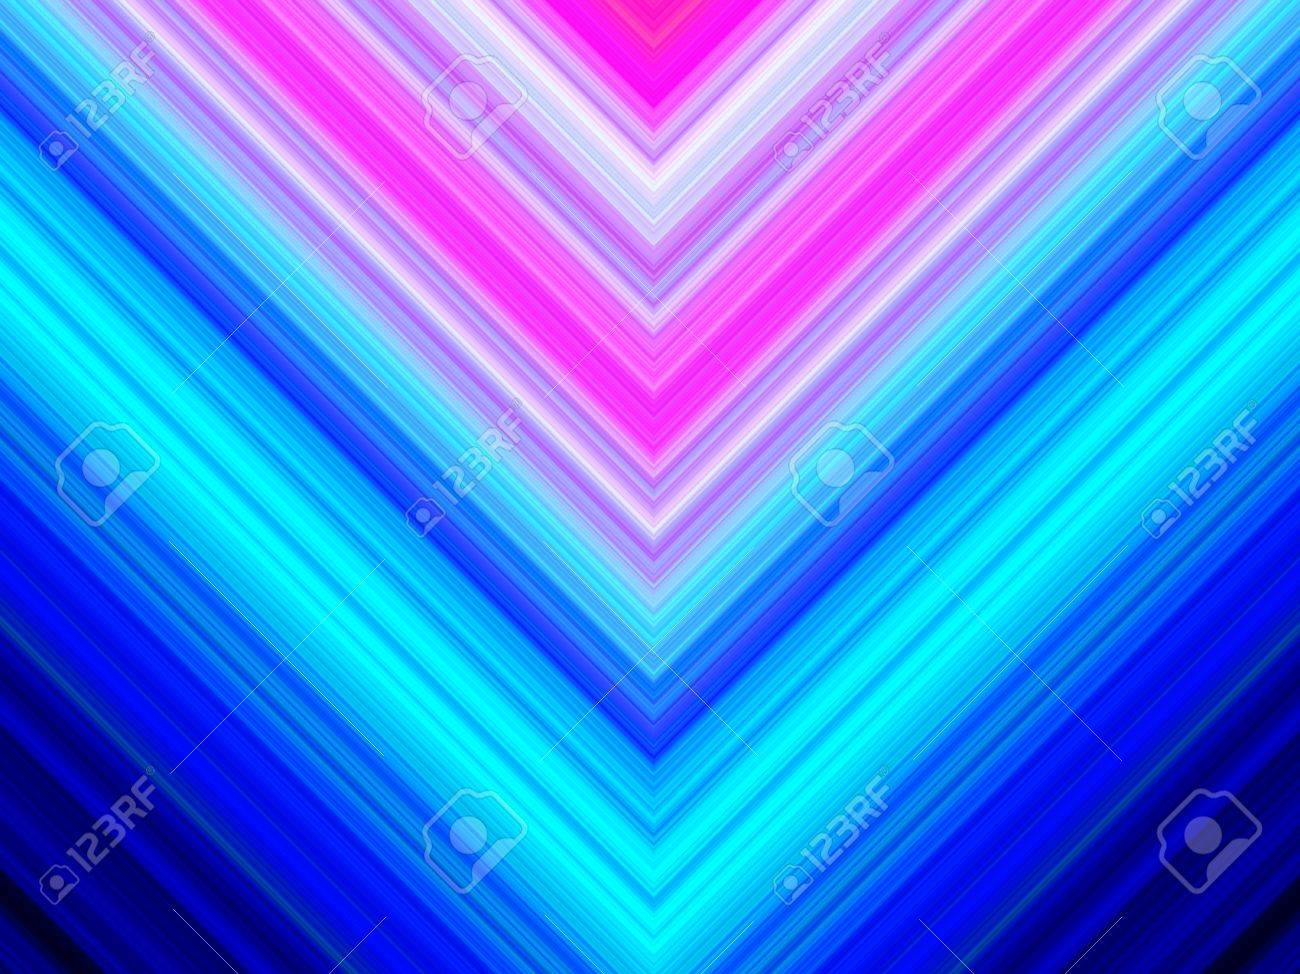 Background image linear gradient - Linear Gradient Colour Background Wallapaer Poster Graphic Stock Photo 736388